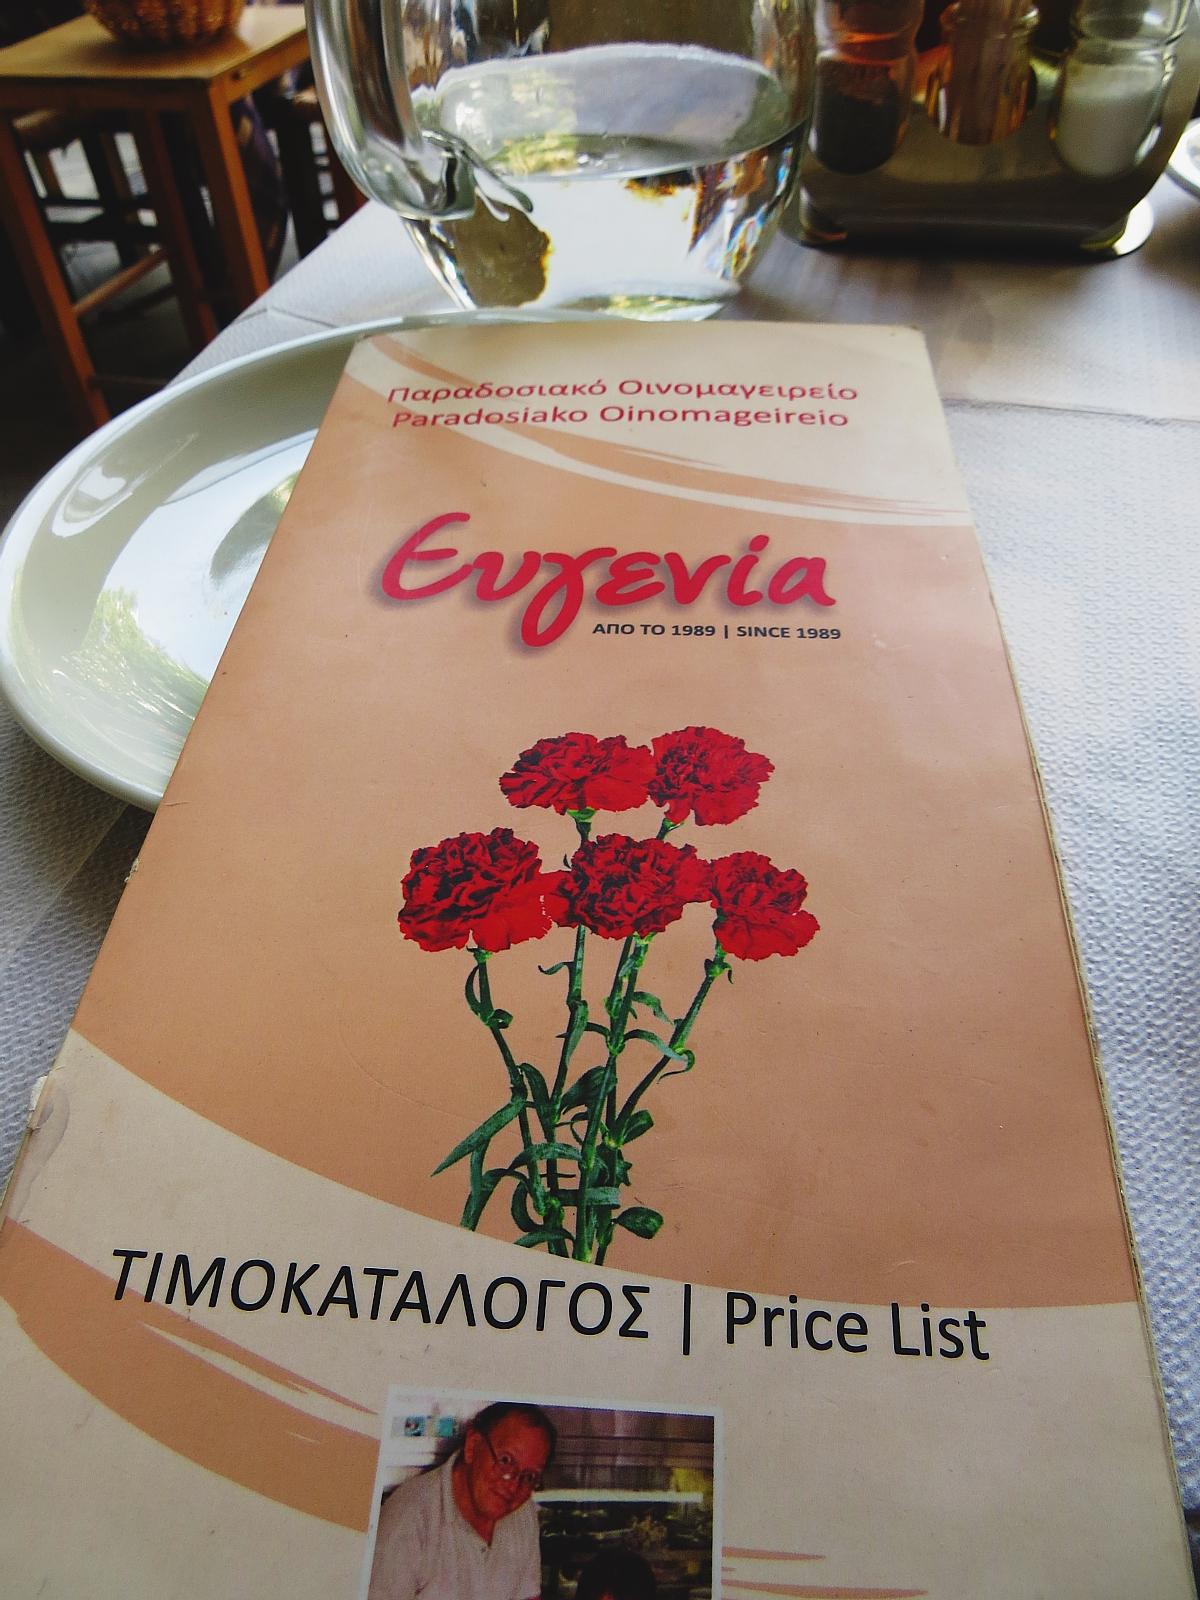 My Favorite Greek Restaurant-Eugenia (Paradosiako Cafeneion) In Athens